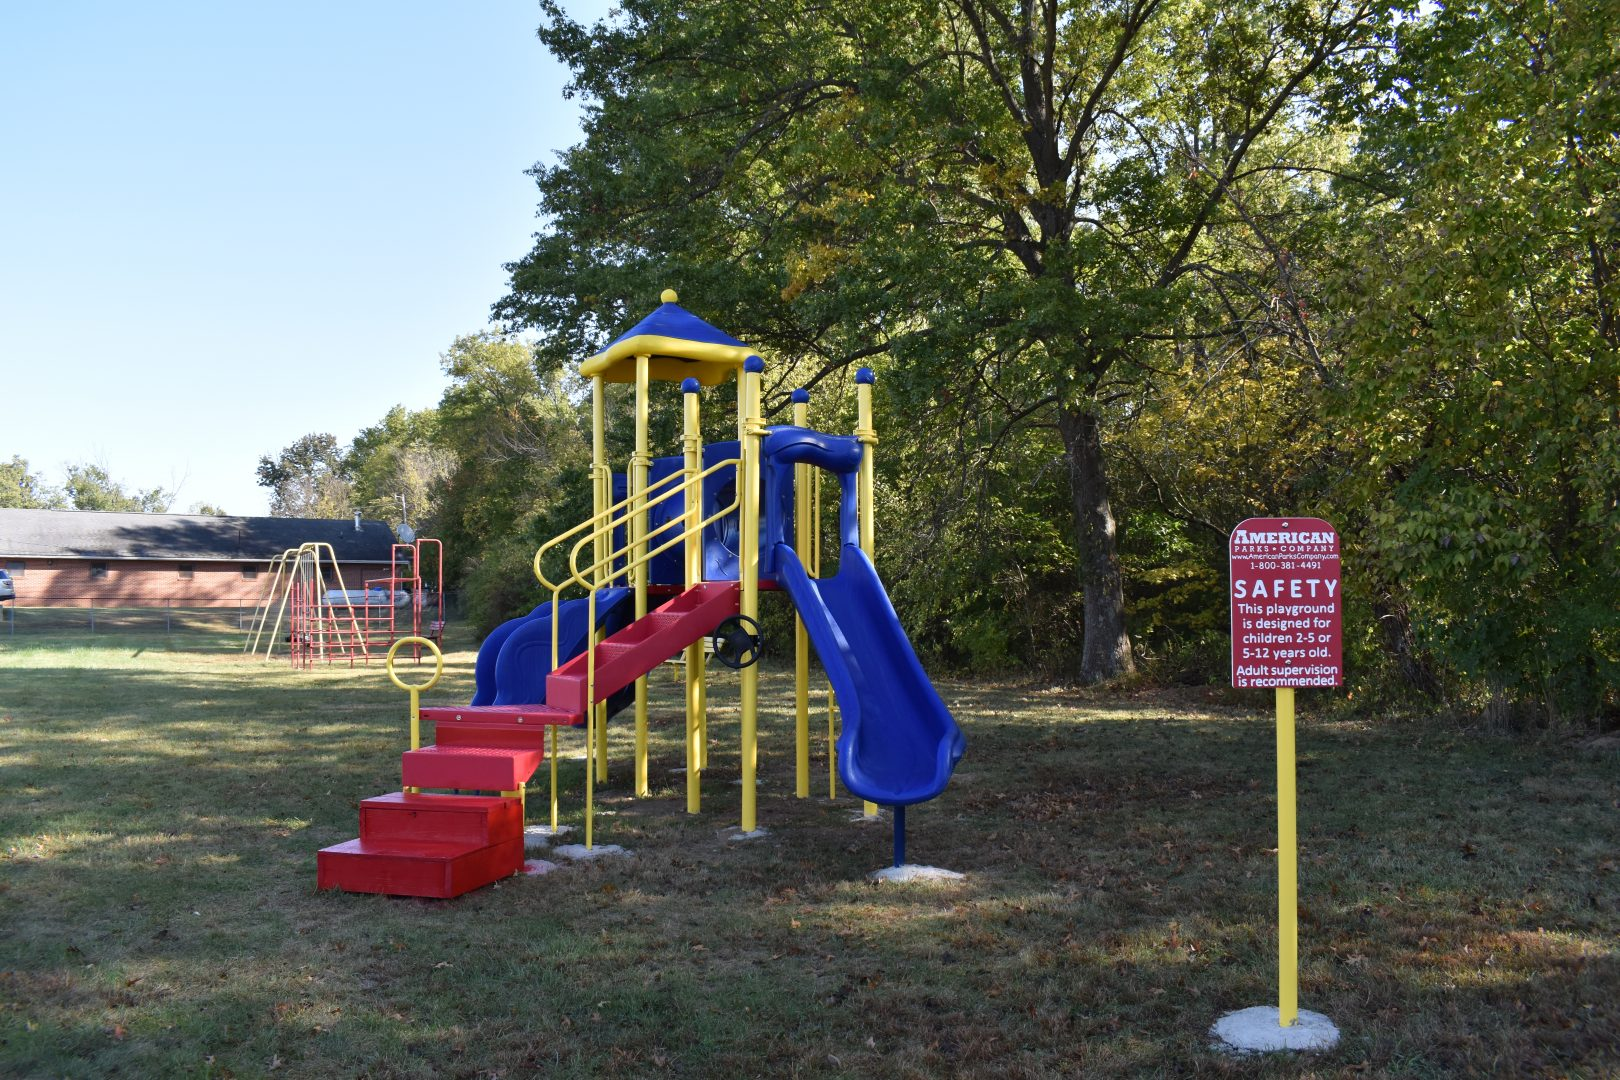 2019 Grant to Scioto Township for New Playground Equipment at Orient Park